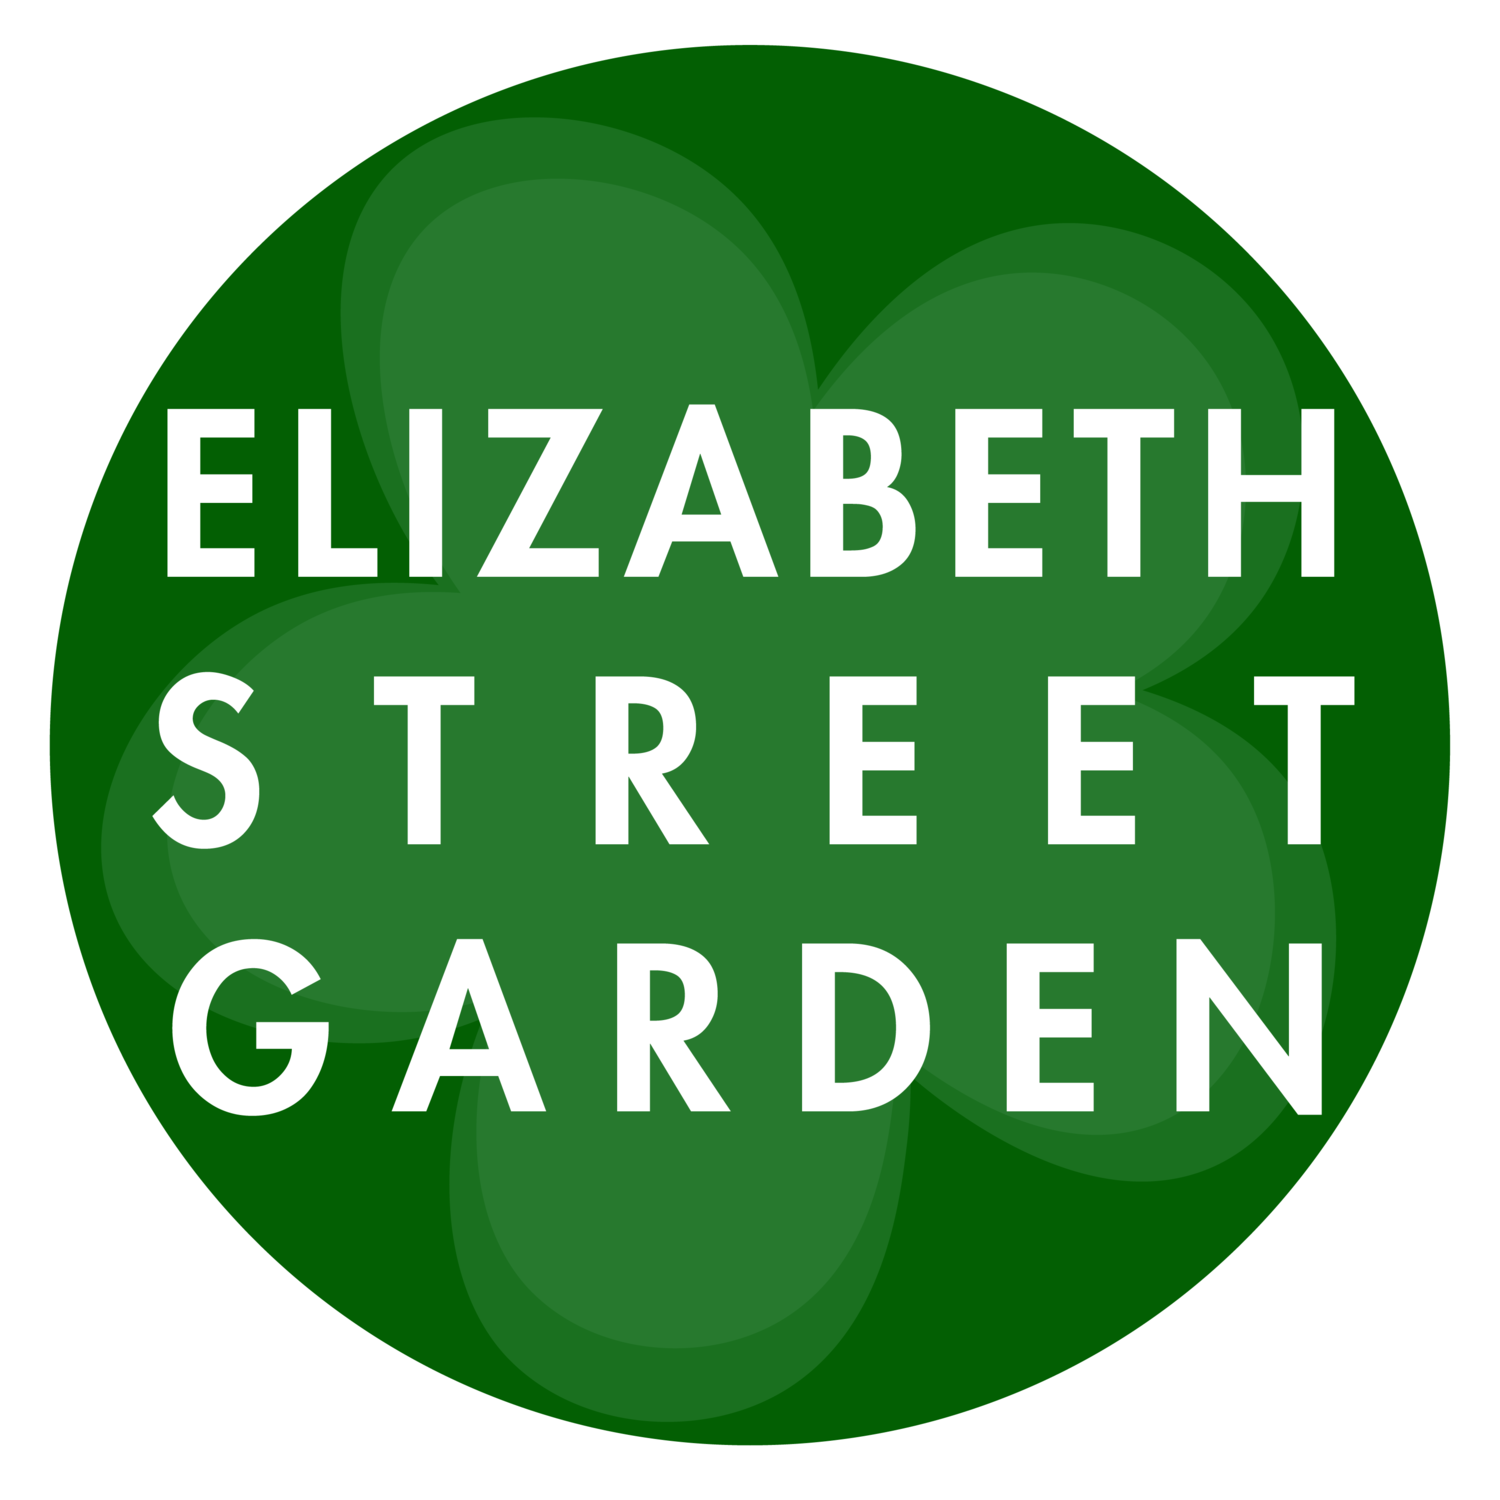 Elizabeth Street Garden - Official Website